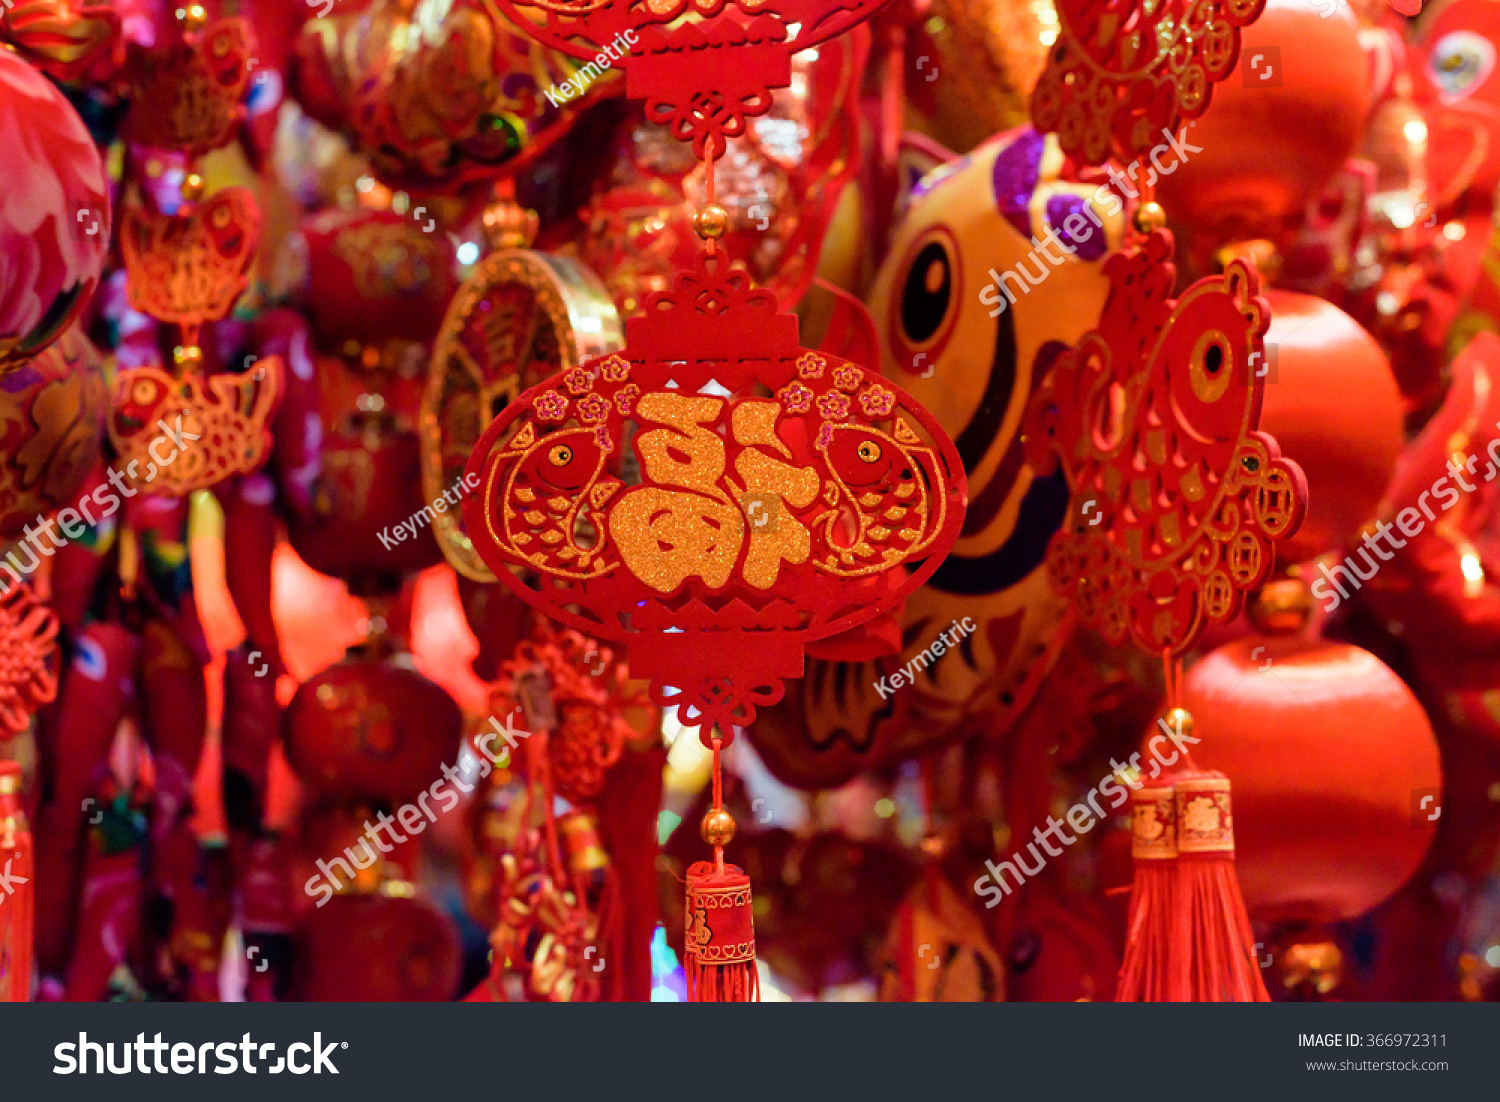 traditional chinese new year decorations color stock photo 366972311 shutterstock. Black Bedroom Furniture Sets. Home Design Ideas